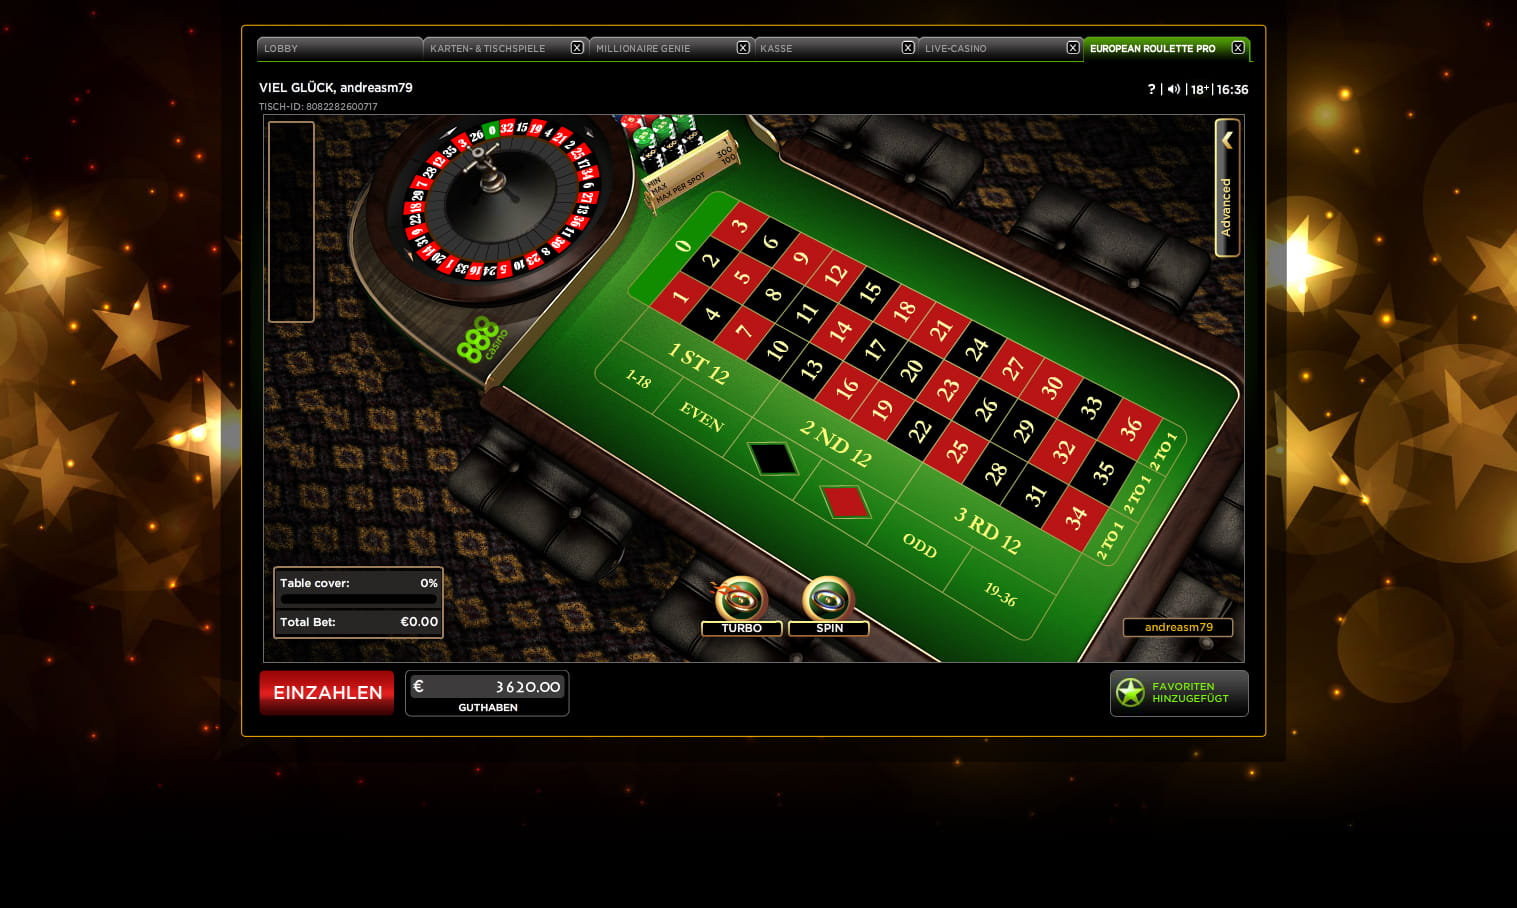 free play casino online heart spielen